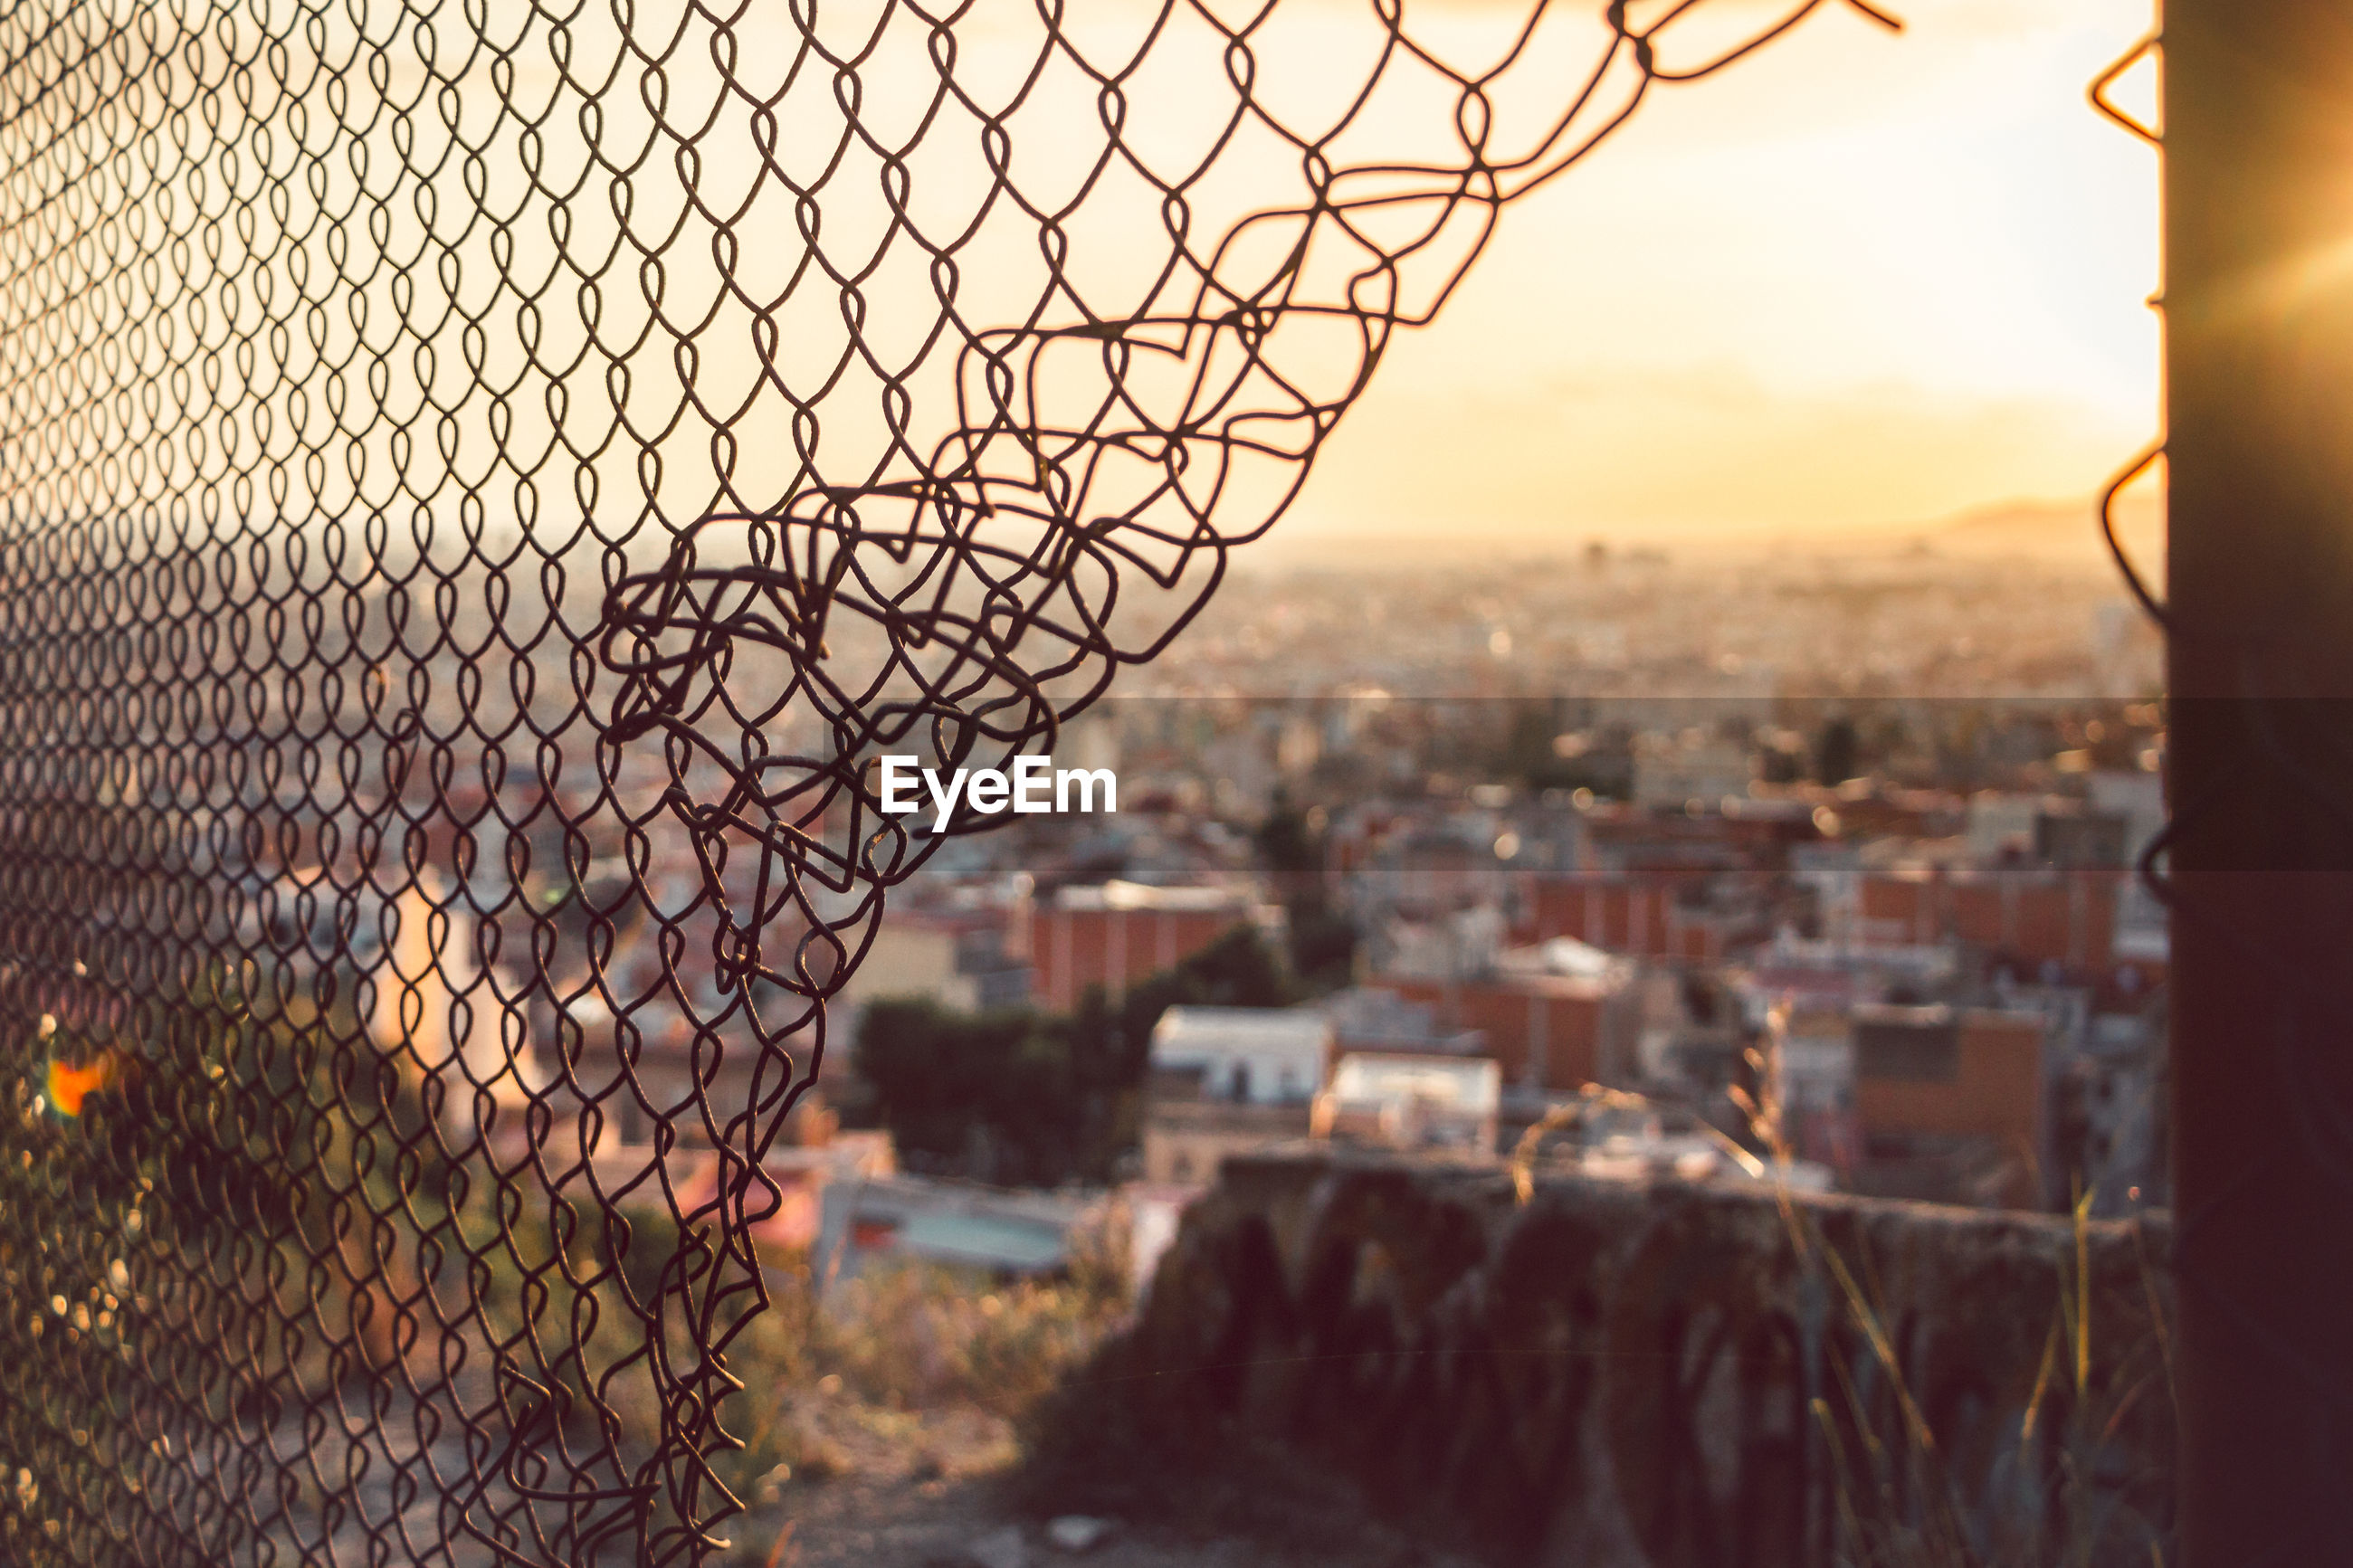 Town seen from broken chainlink fence at morning